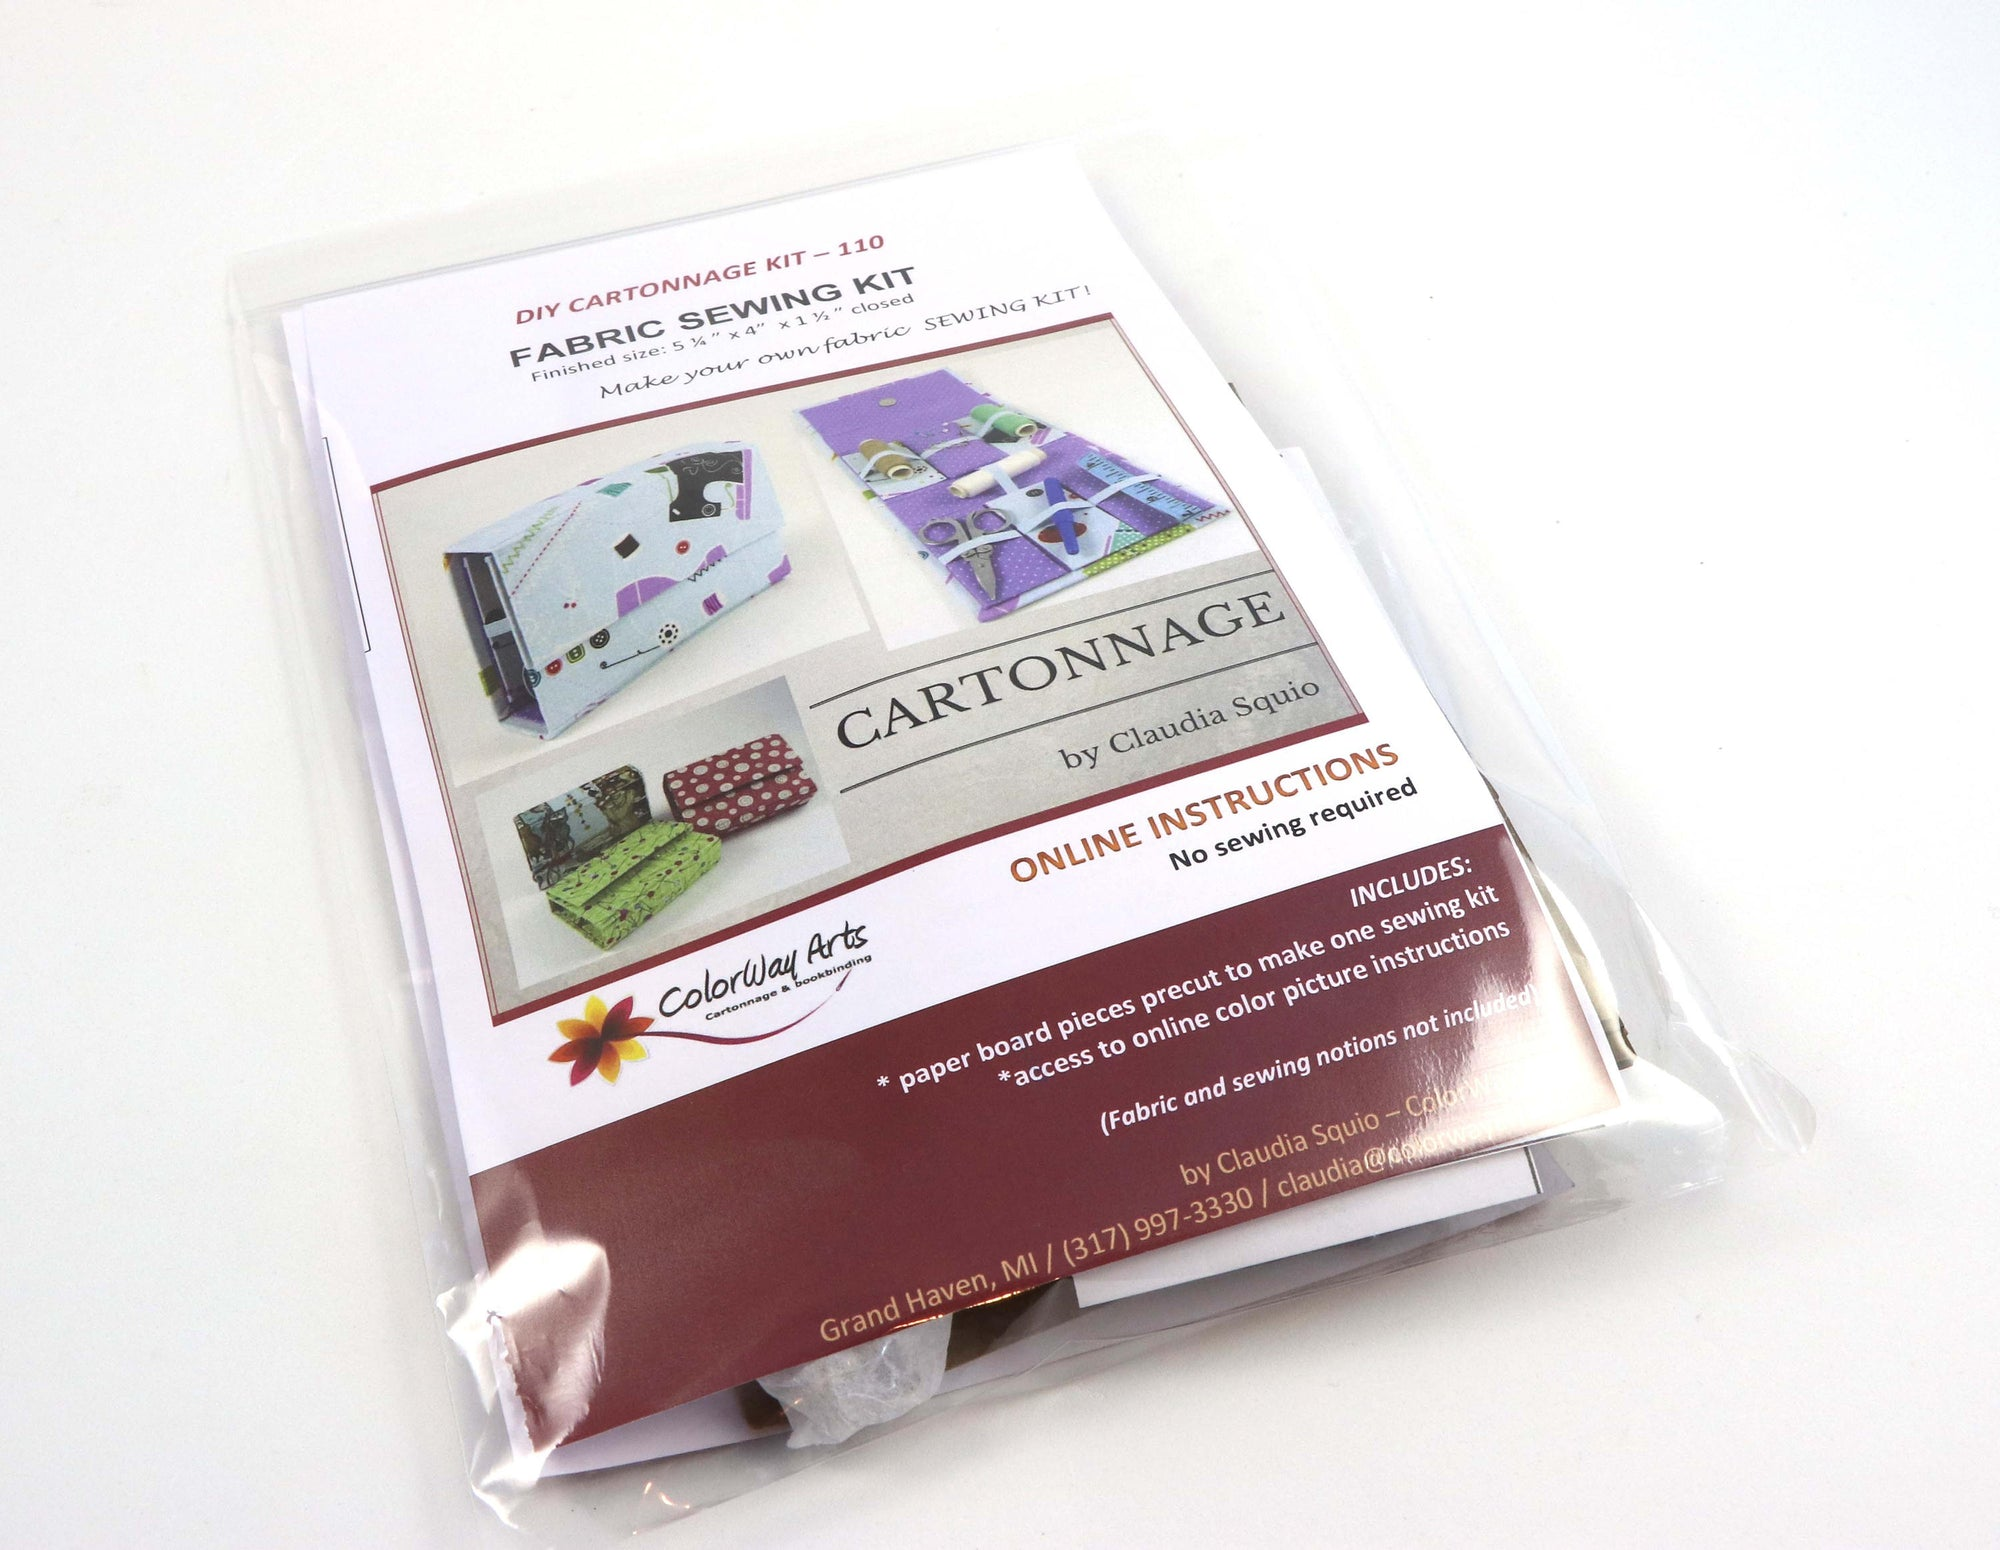 Fabric Sewing kit DIY kit, cartonnage kit 110, online instructions included - Colorway Arts